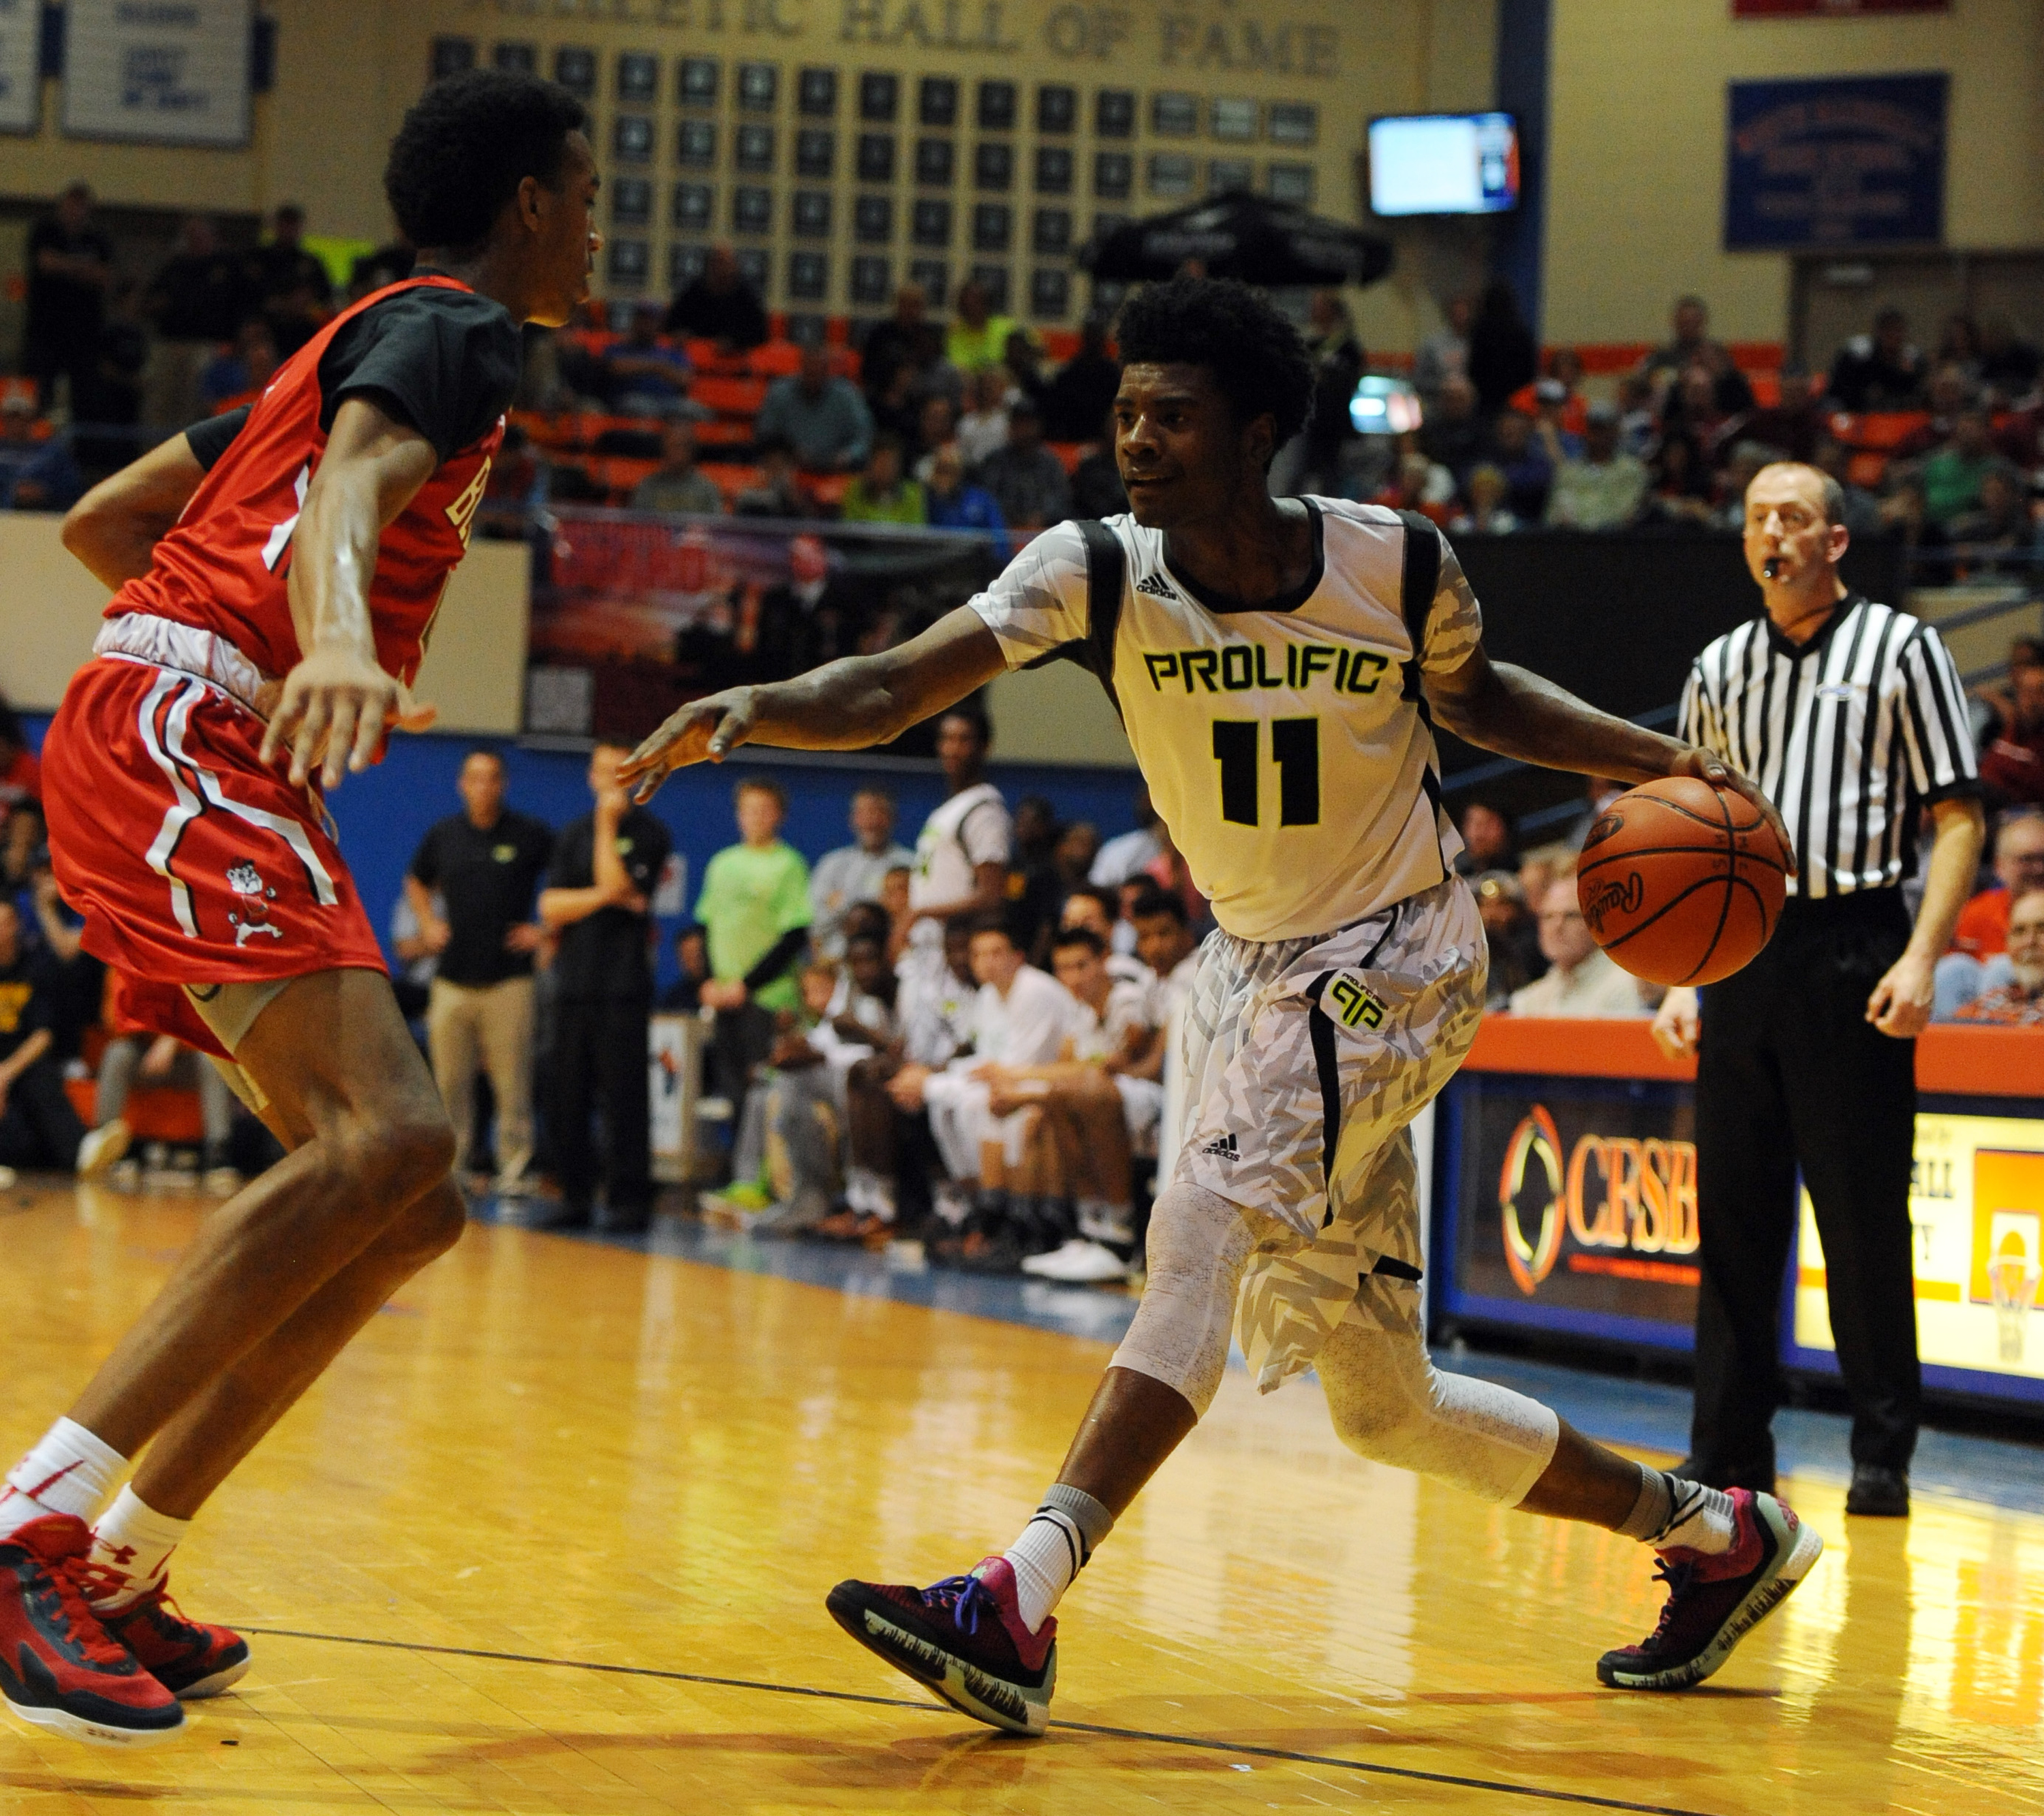 Prolific Prep guard Josh Jackson (11) works against Advanced Prep guard Terrance Ferguson (5) (Photo: Christopher Hanewinckel USA TODAY Sports)